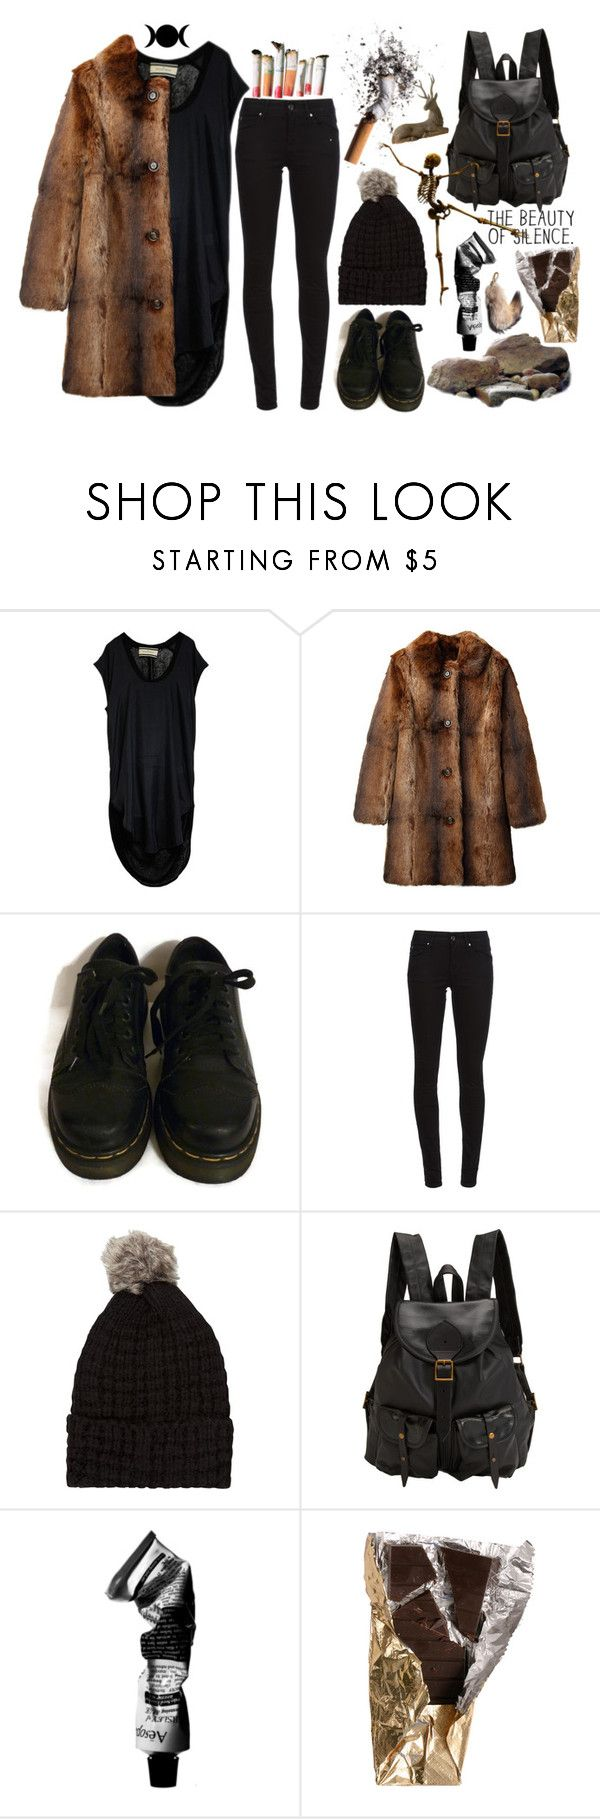 """in the beginning"" by beatnikgonzo ❤ liked on Polyvore featuring By Malene Birger, A.P.C., Dr. Martens, Burberry, Jas M.B., Aesop and Isabel Marant"